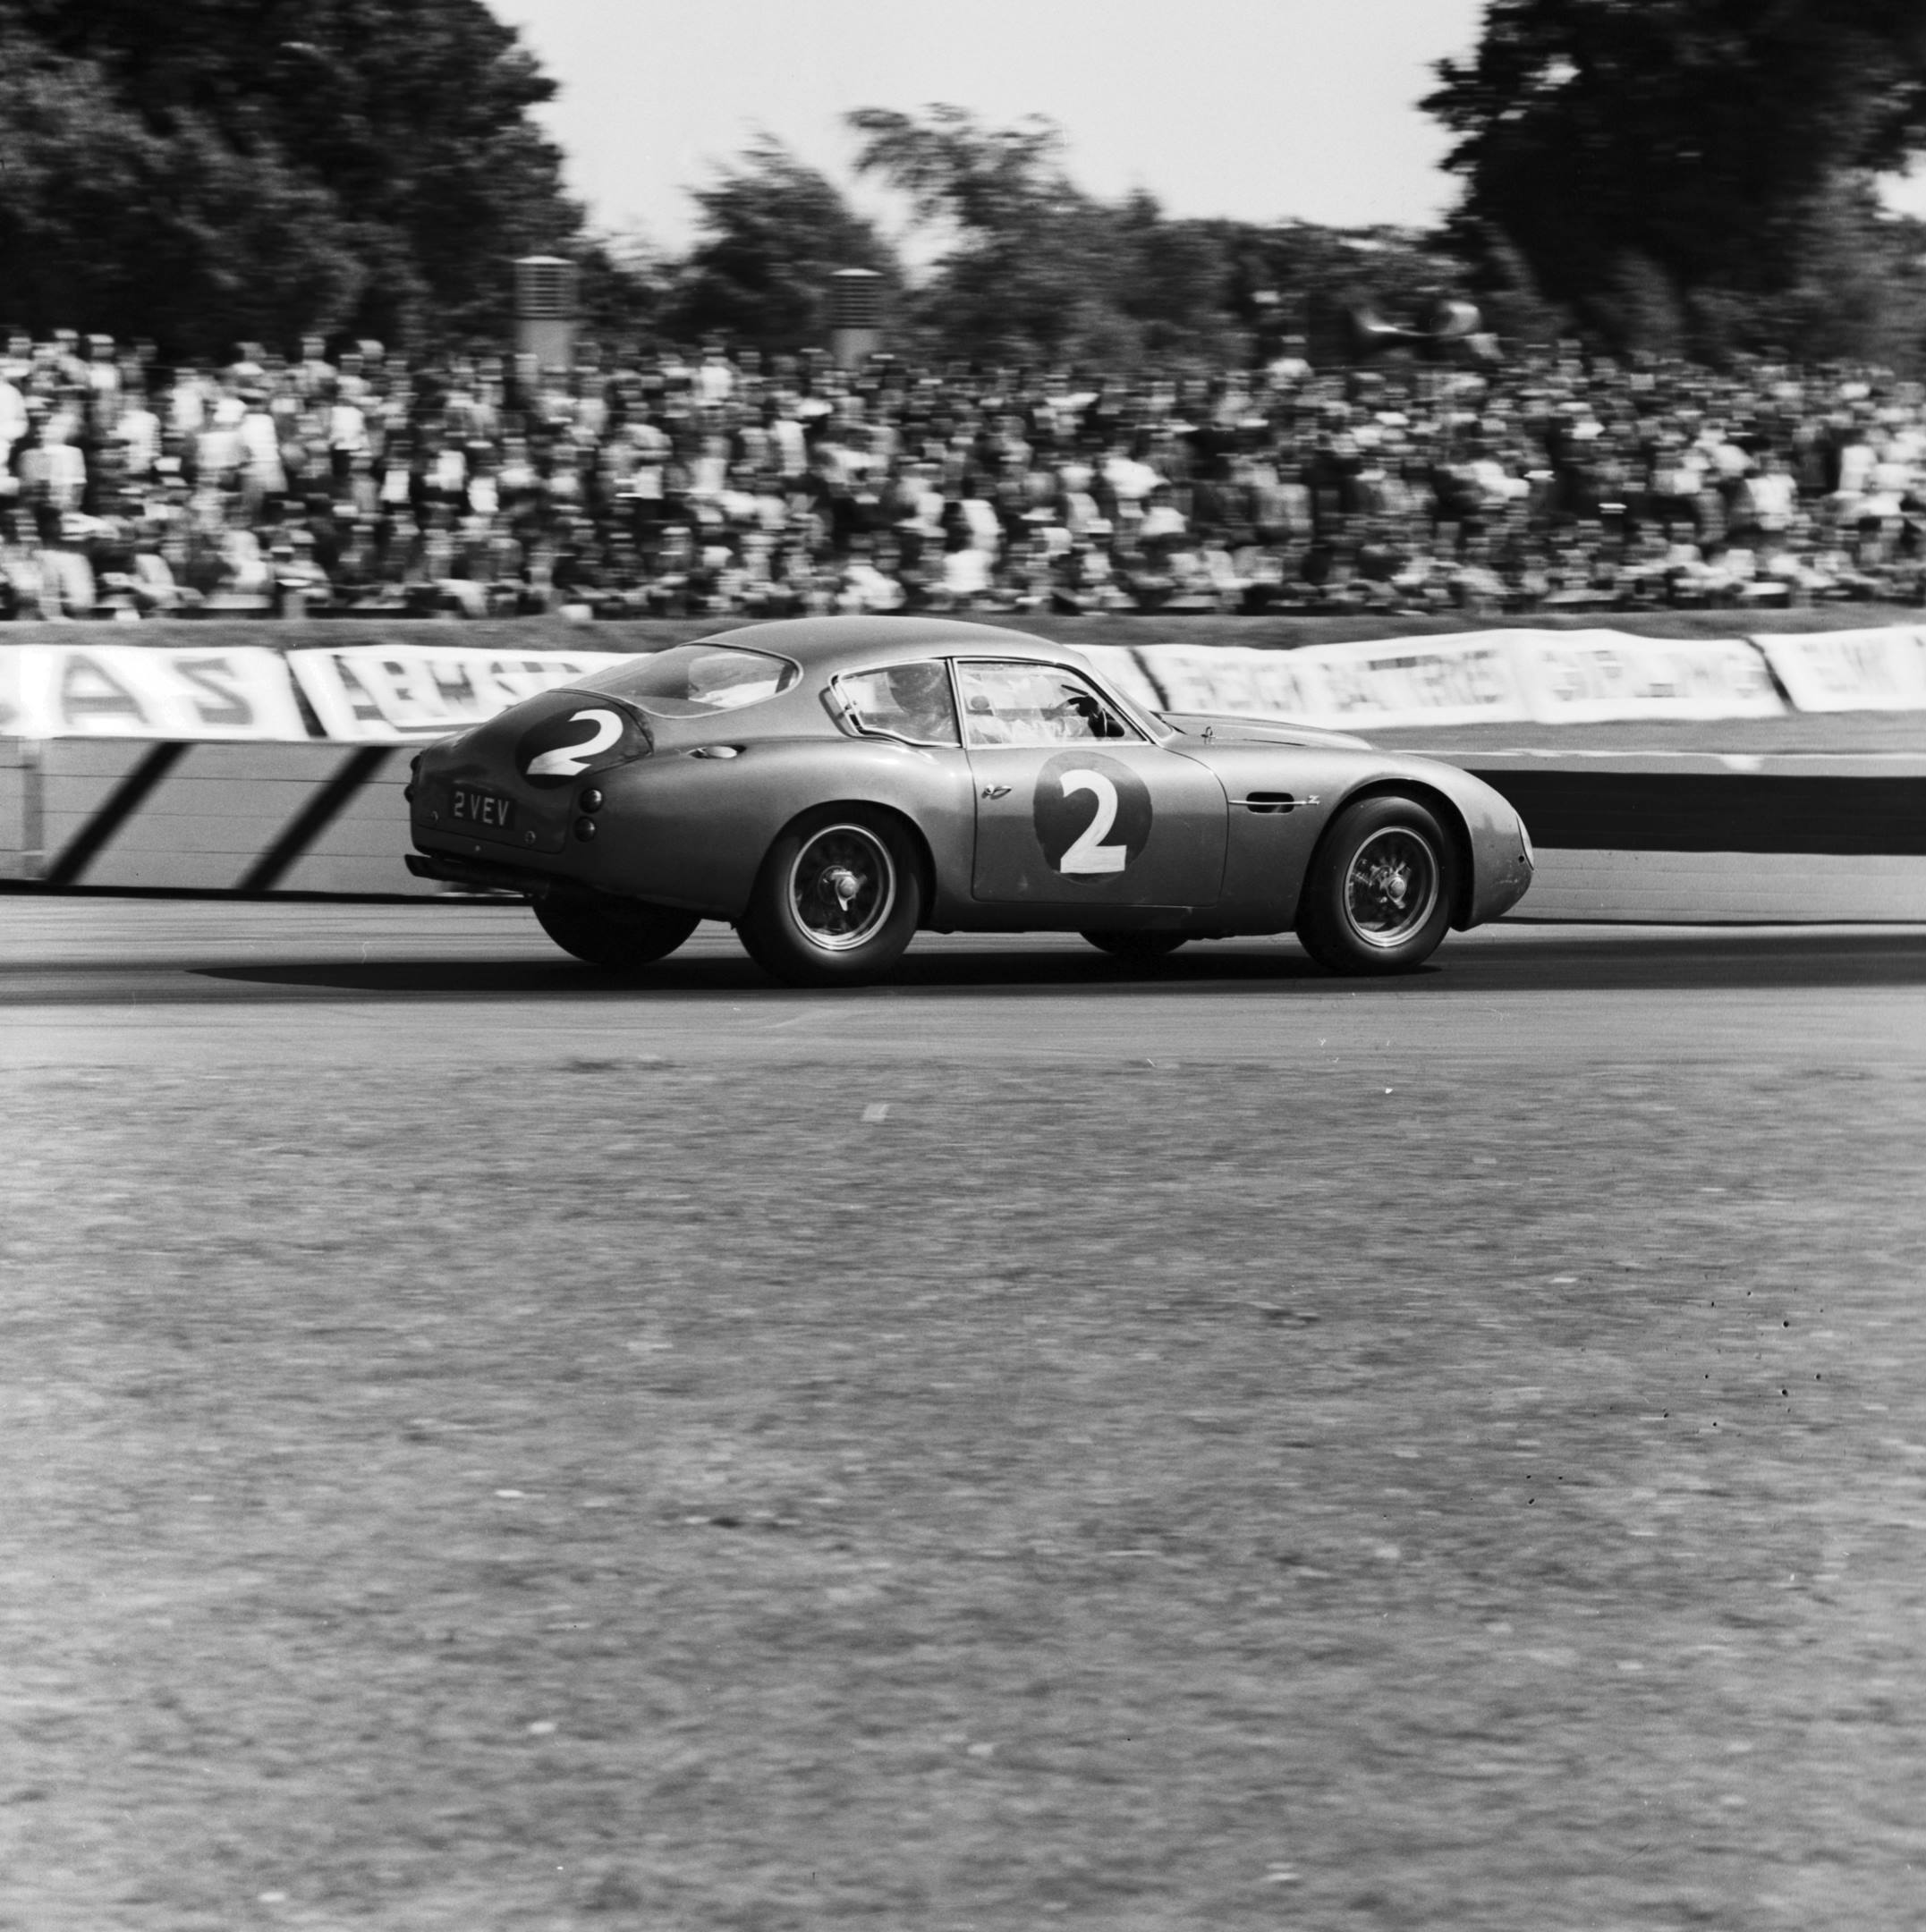 historic photo of the Aston Martin DB4GT 2VEV racing